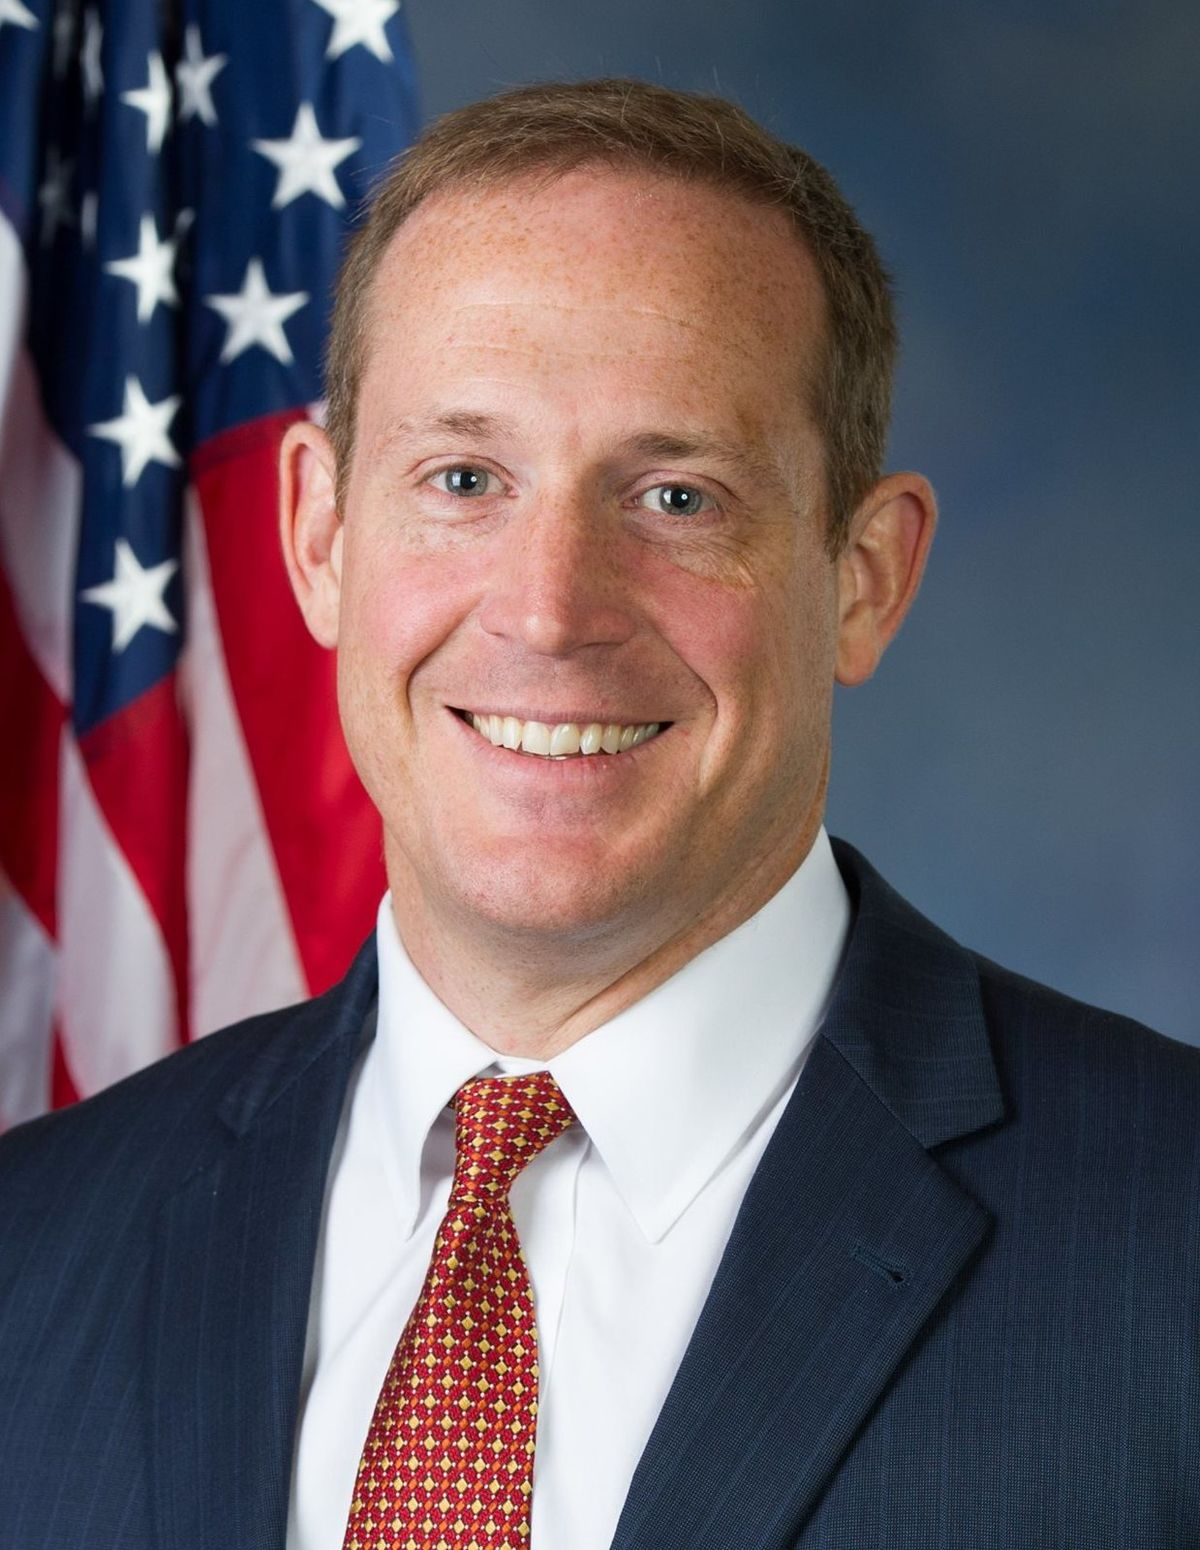 Ted_Budd_official_congressional_photo.jpg